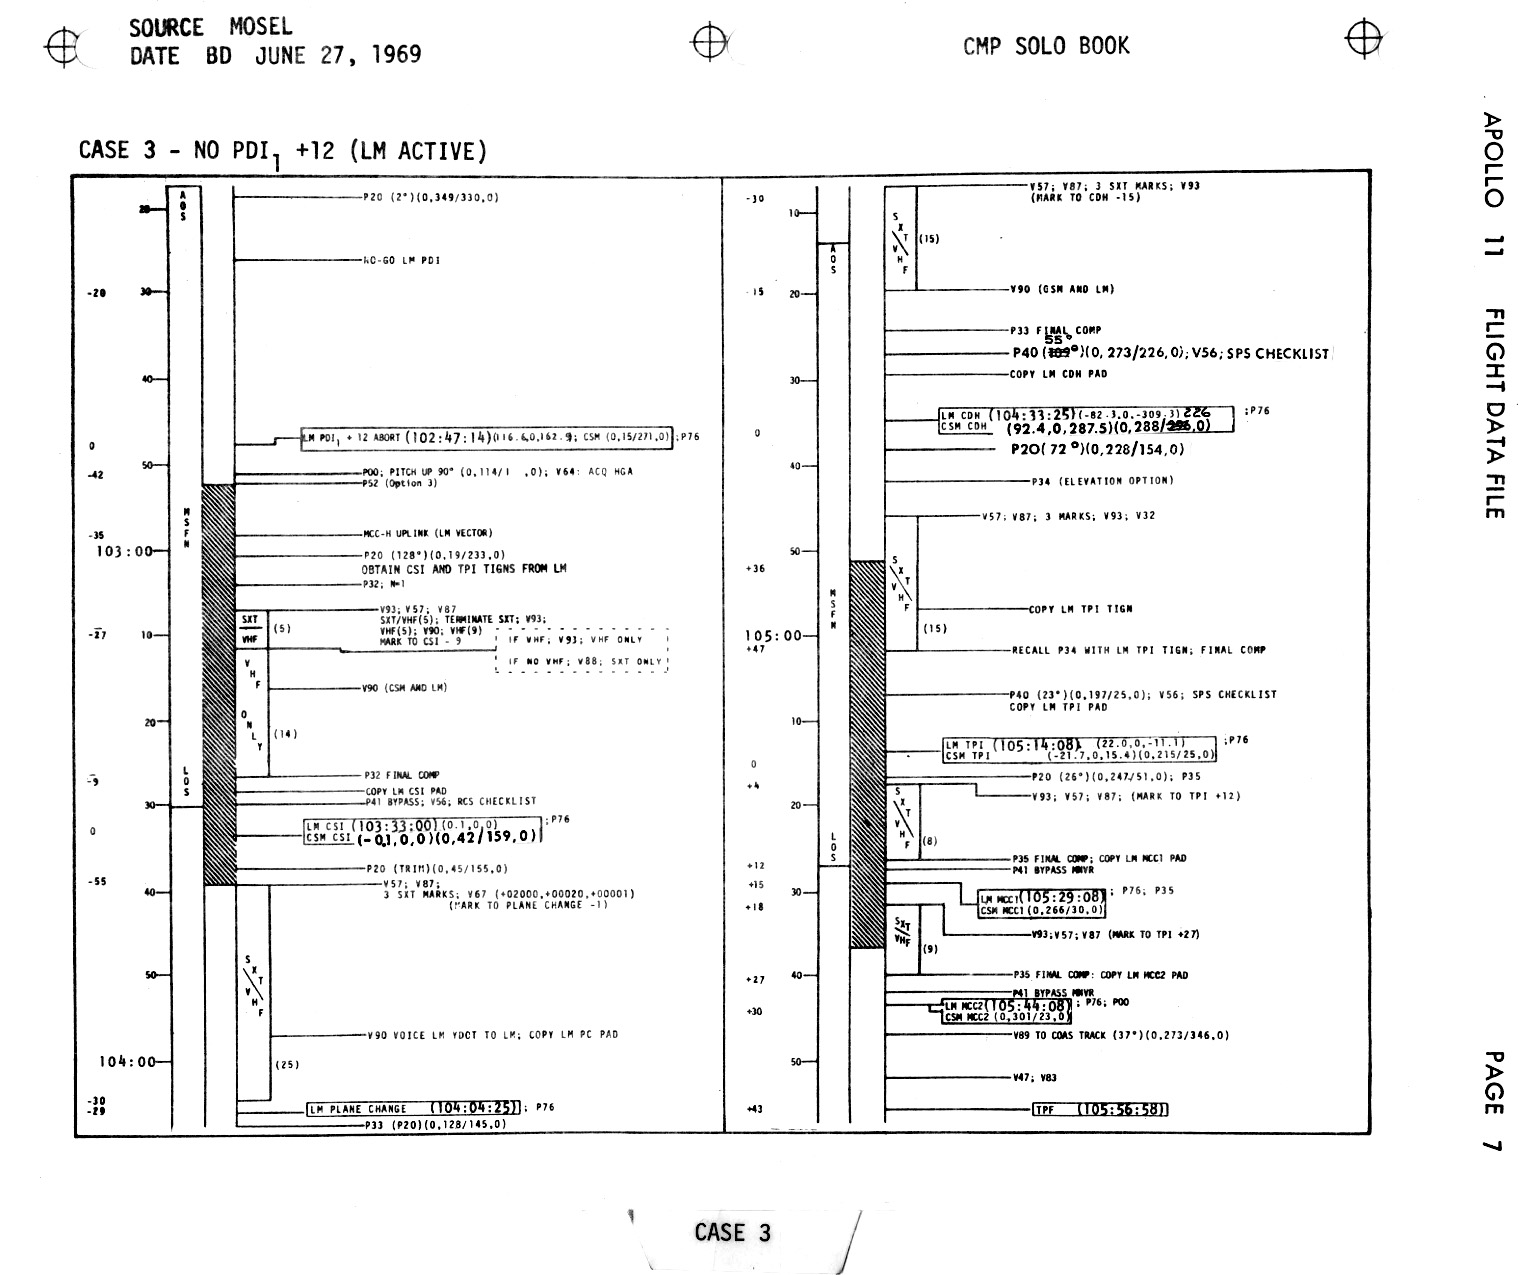 Apollo 11 Flight Journal - CMP Solo Book - Index Page